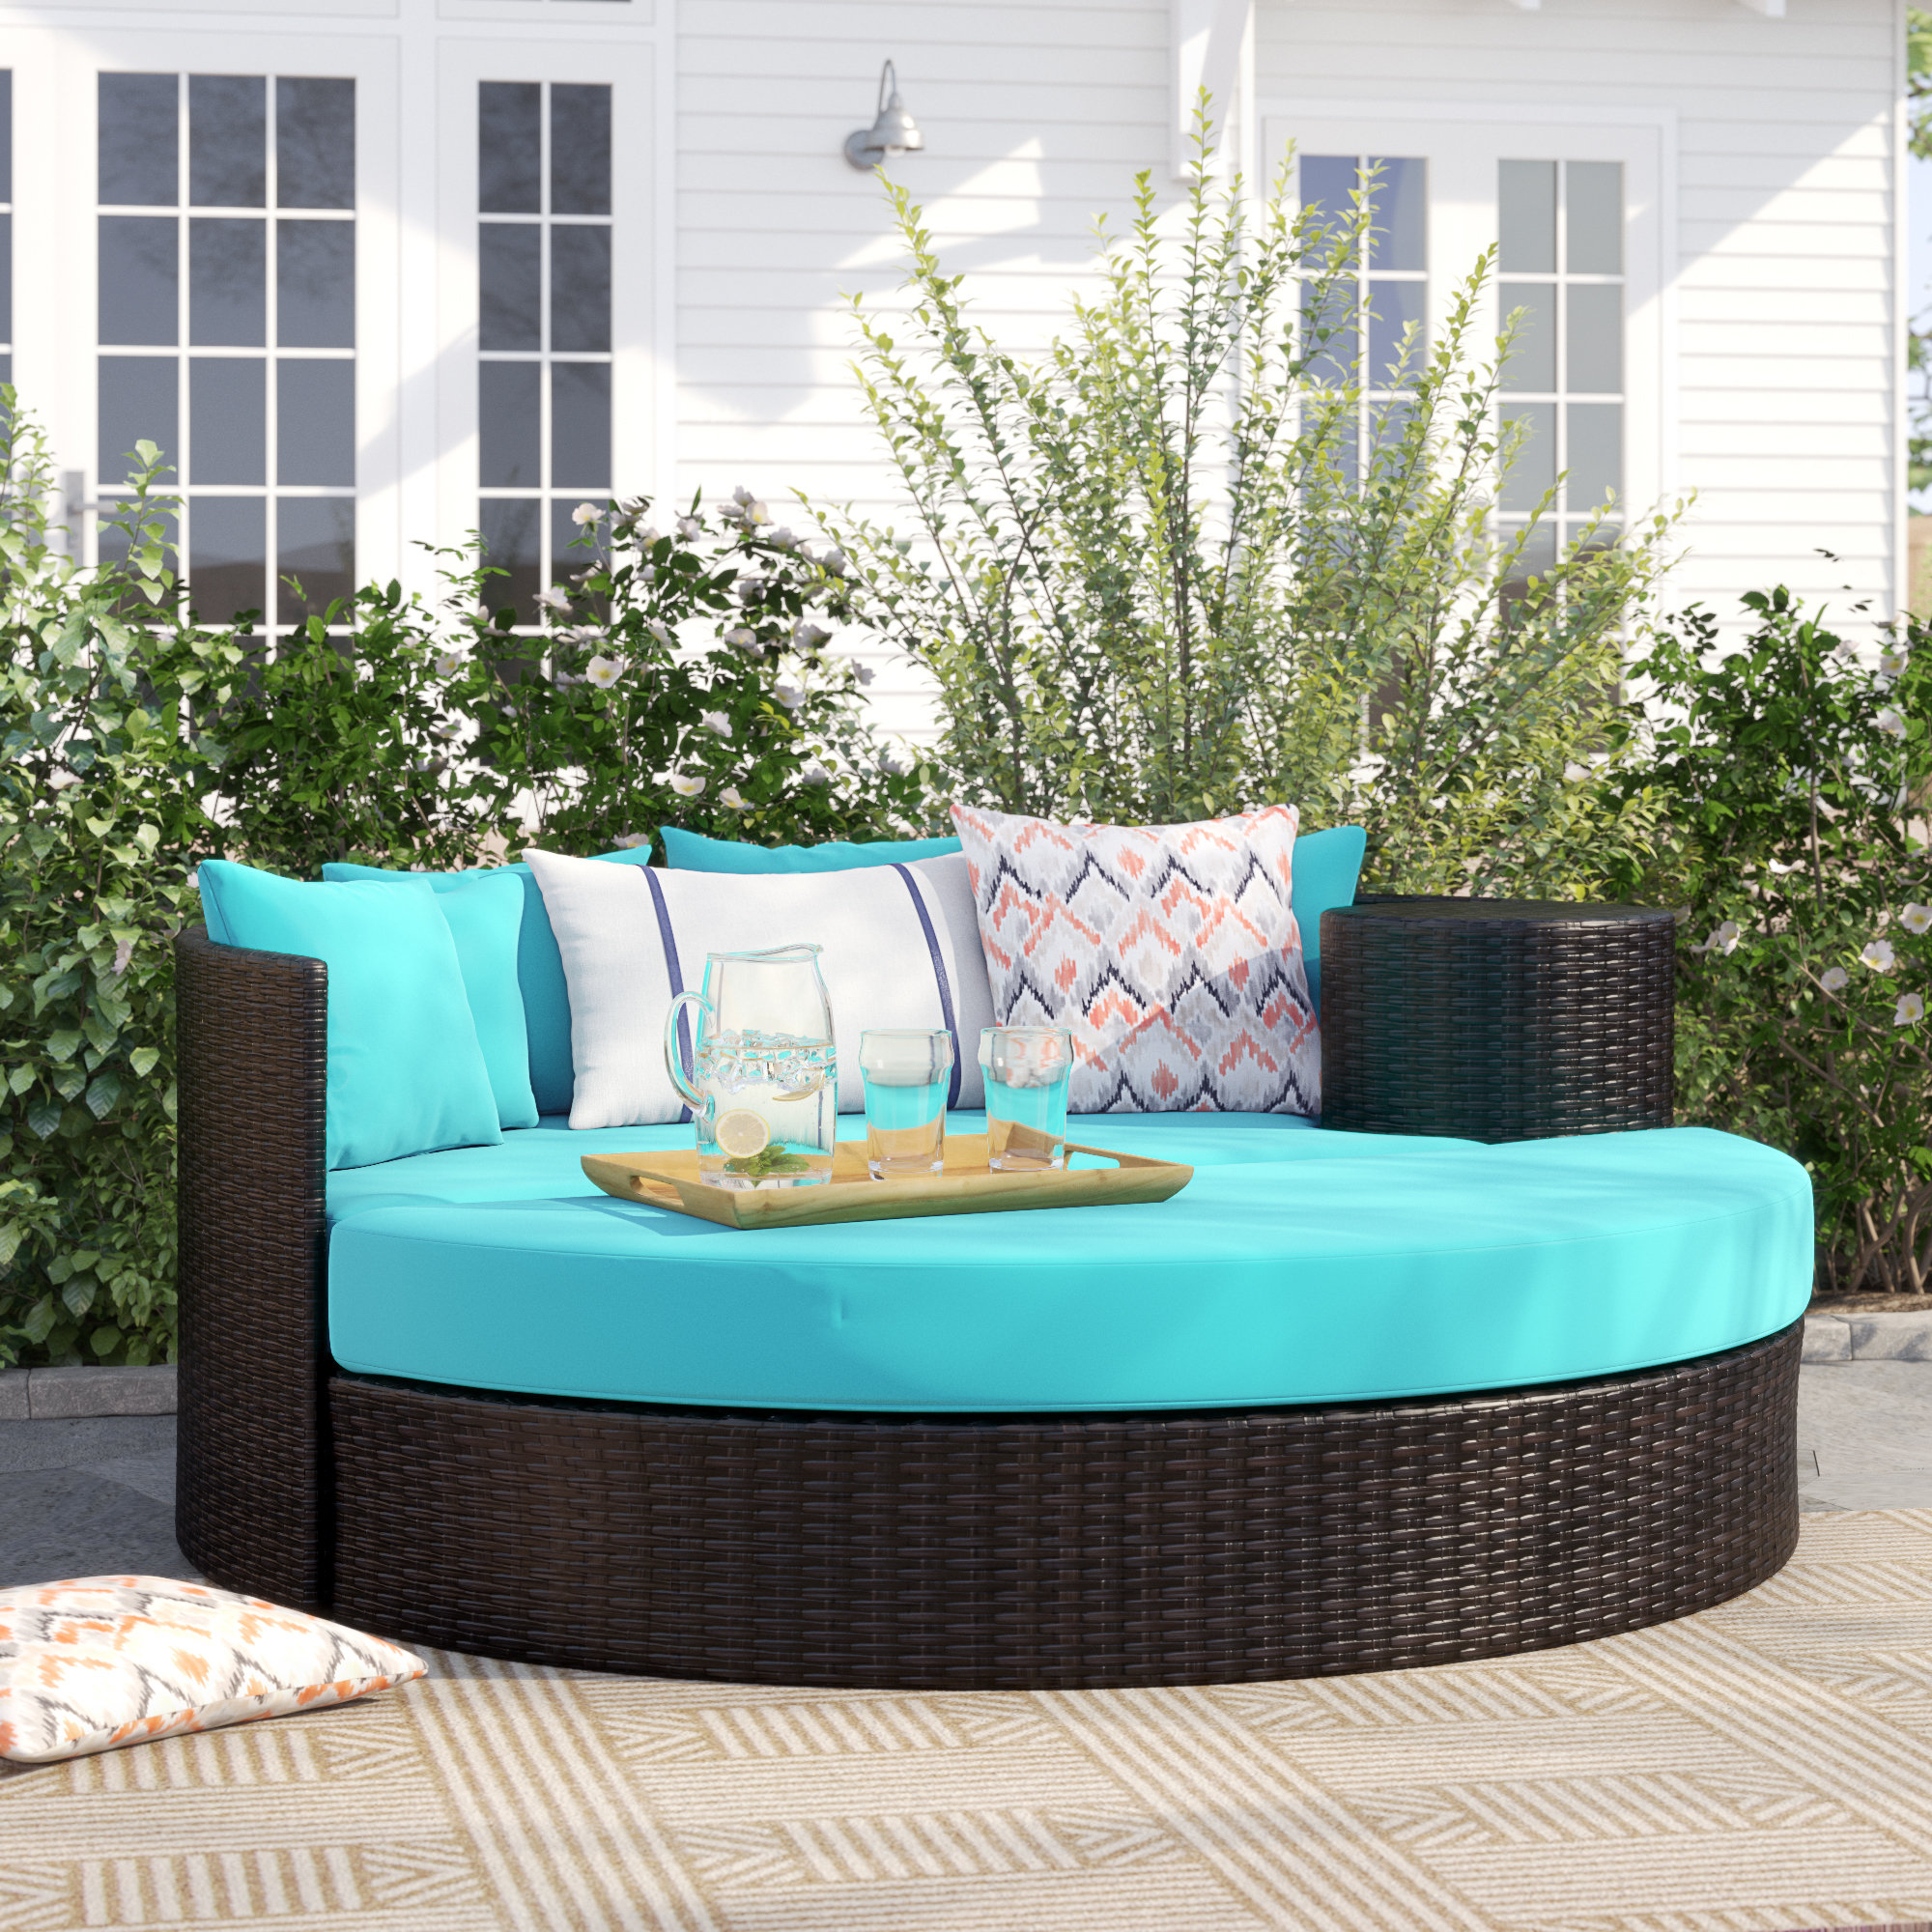 Current Sol 72 Outdoor Freeport Patio Daybed With Cushion & Reviews Throughout Brentwood Patio Daybeds With Cushions (View 9 of 25)